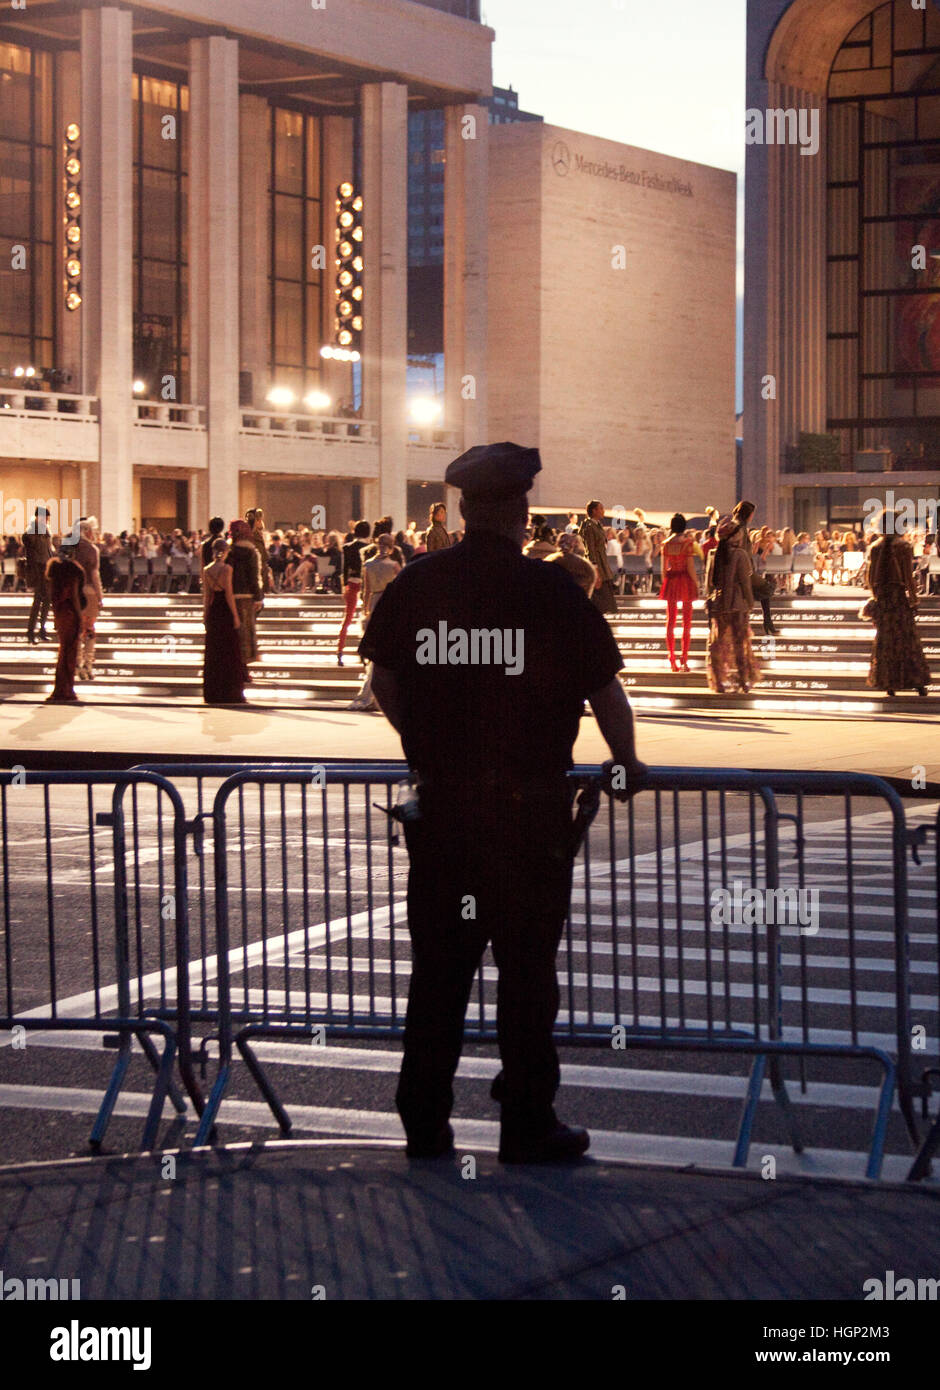 New York Police Officer watching the opening of a Fashion show during New York Fashion Week - Stock Image